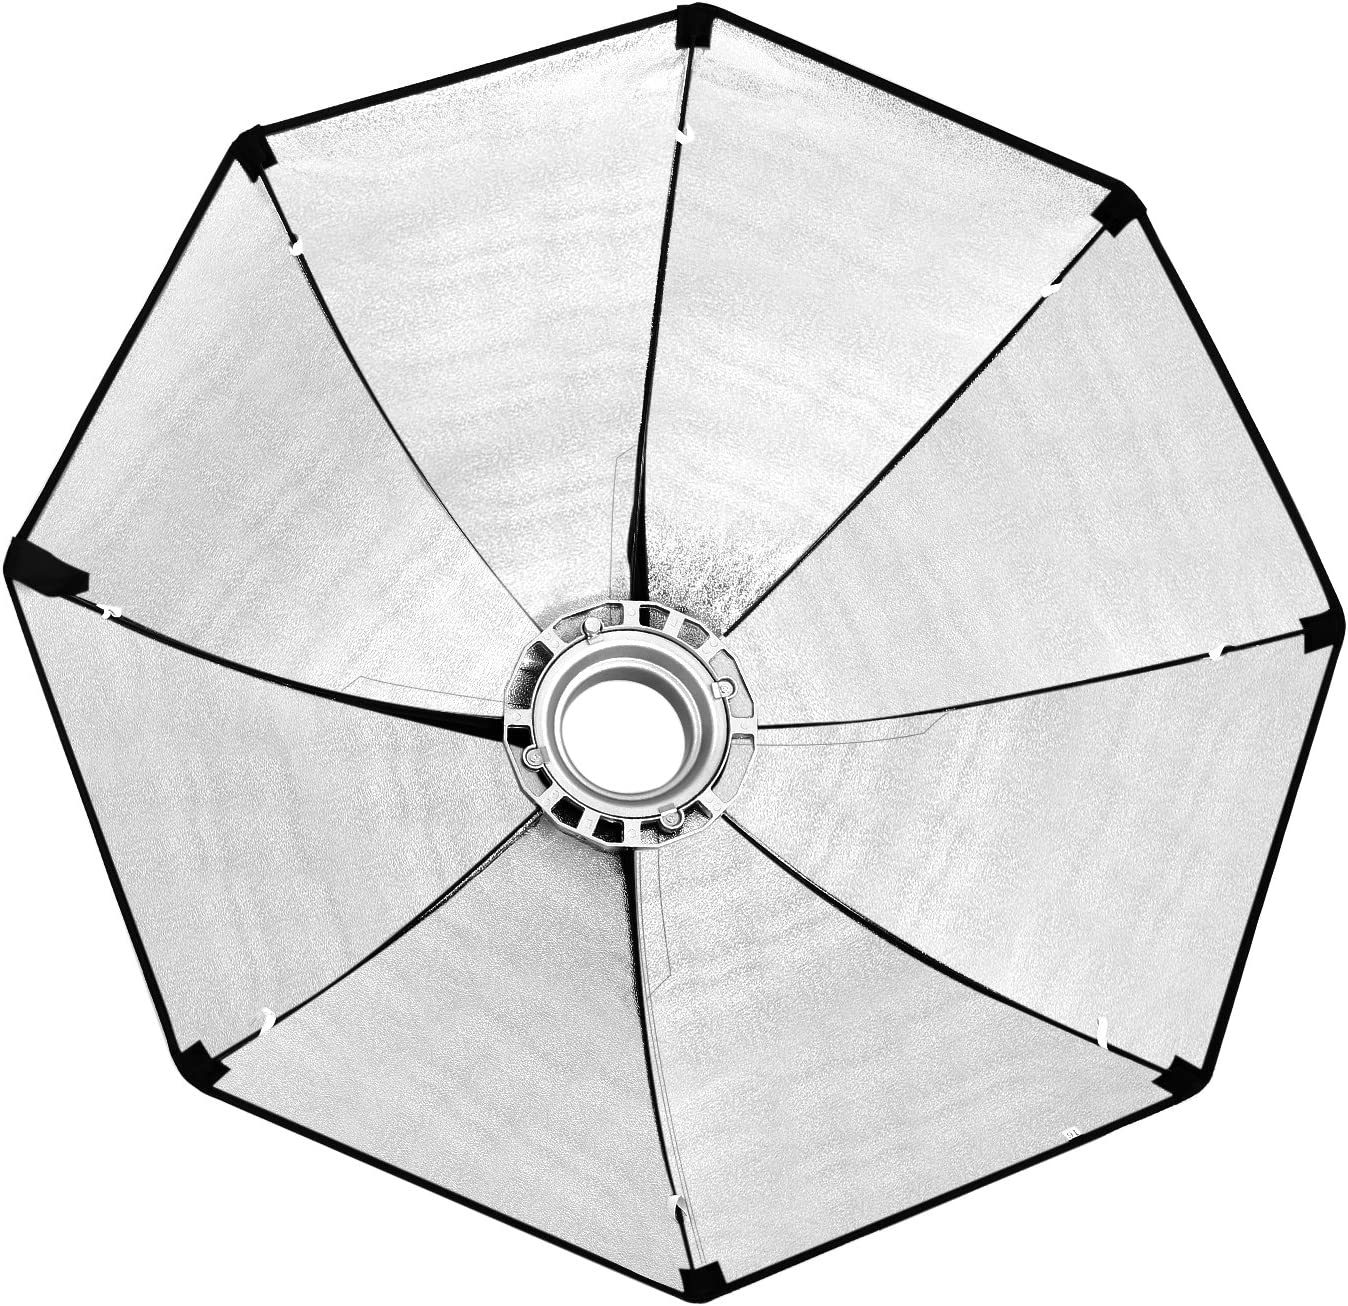 Bowens Mount for Nikon Olympus Neewer 32x32 inches// 80x80 Centimeters Octagonal Speedlite Softbox with S-Type Bracket Holder Sony Pentax Panasonic and Other Strobe Flashes Canon